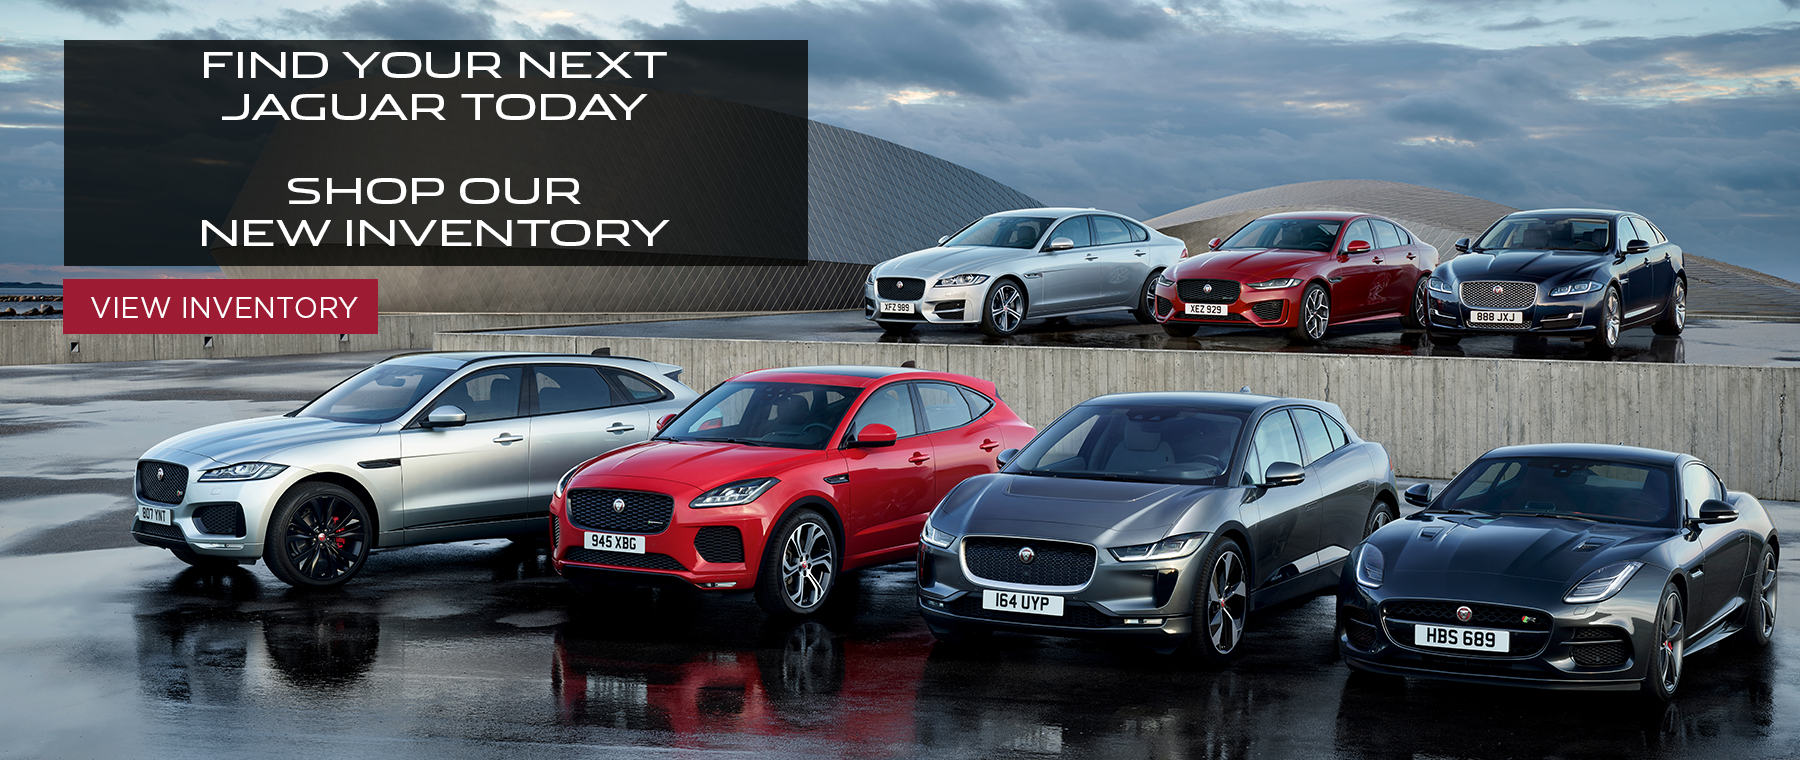 Find your next jaguar today shop our new inventory. Click to view inventory. Jaguar model line up on wet pavement